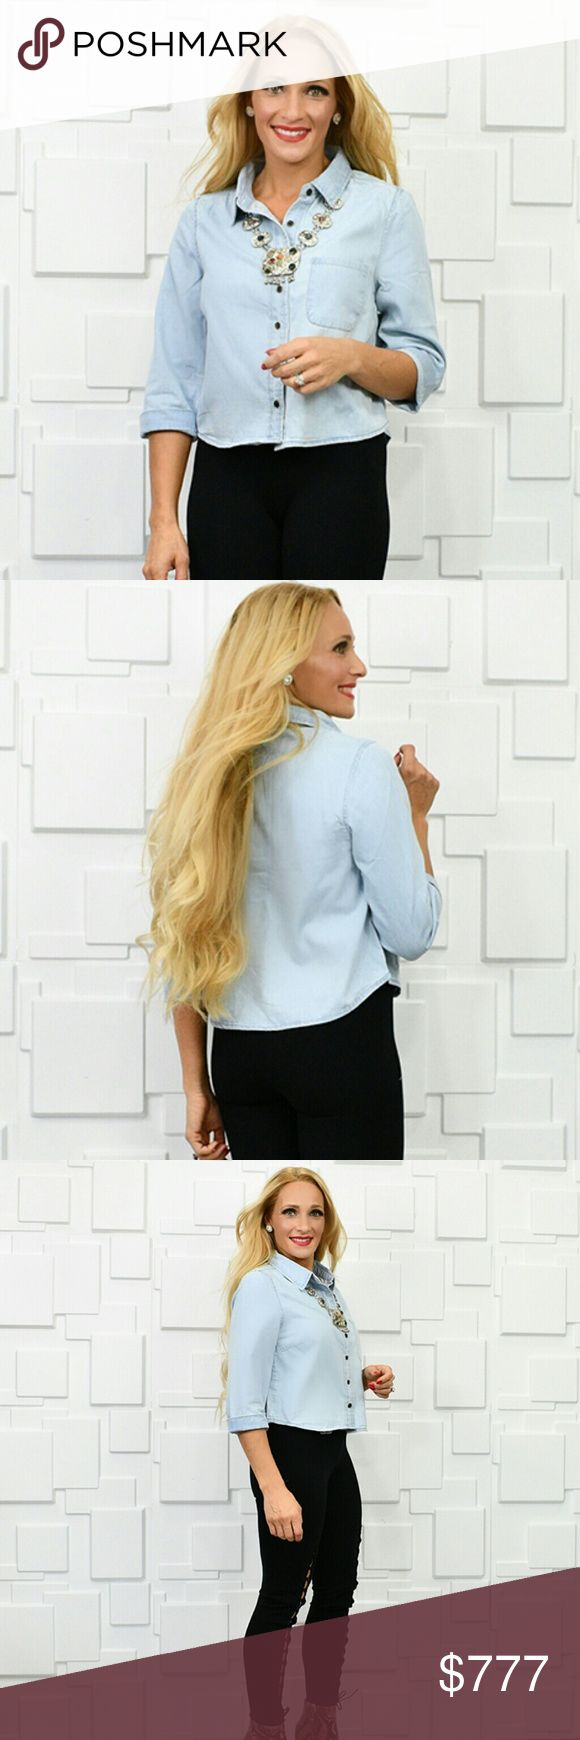 CLASSIC DENIM TOP Brand new  Boutique item  Price is firm  Chic and classy denim top. Approx 3/4 sleeves and button down front. Pair with our black shag vest and tan pants for a complete look!!  True to size. Necklace, pants and vest are available in my boutique . . Tops